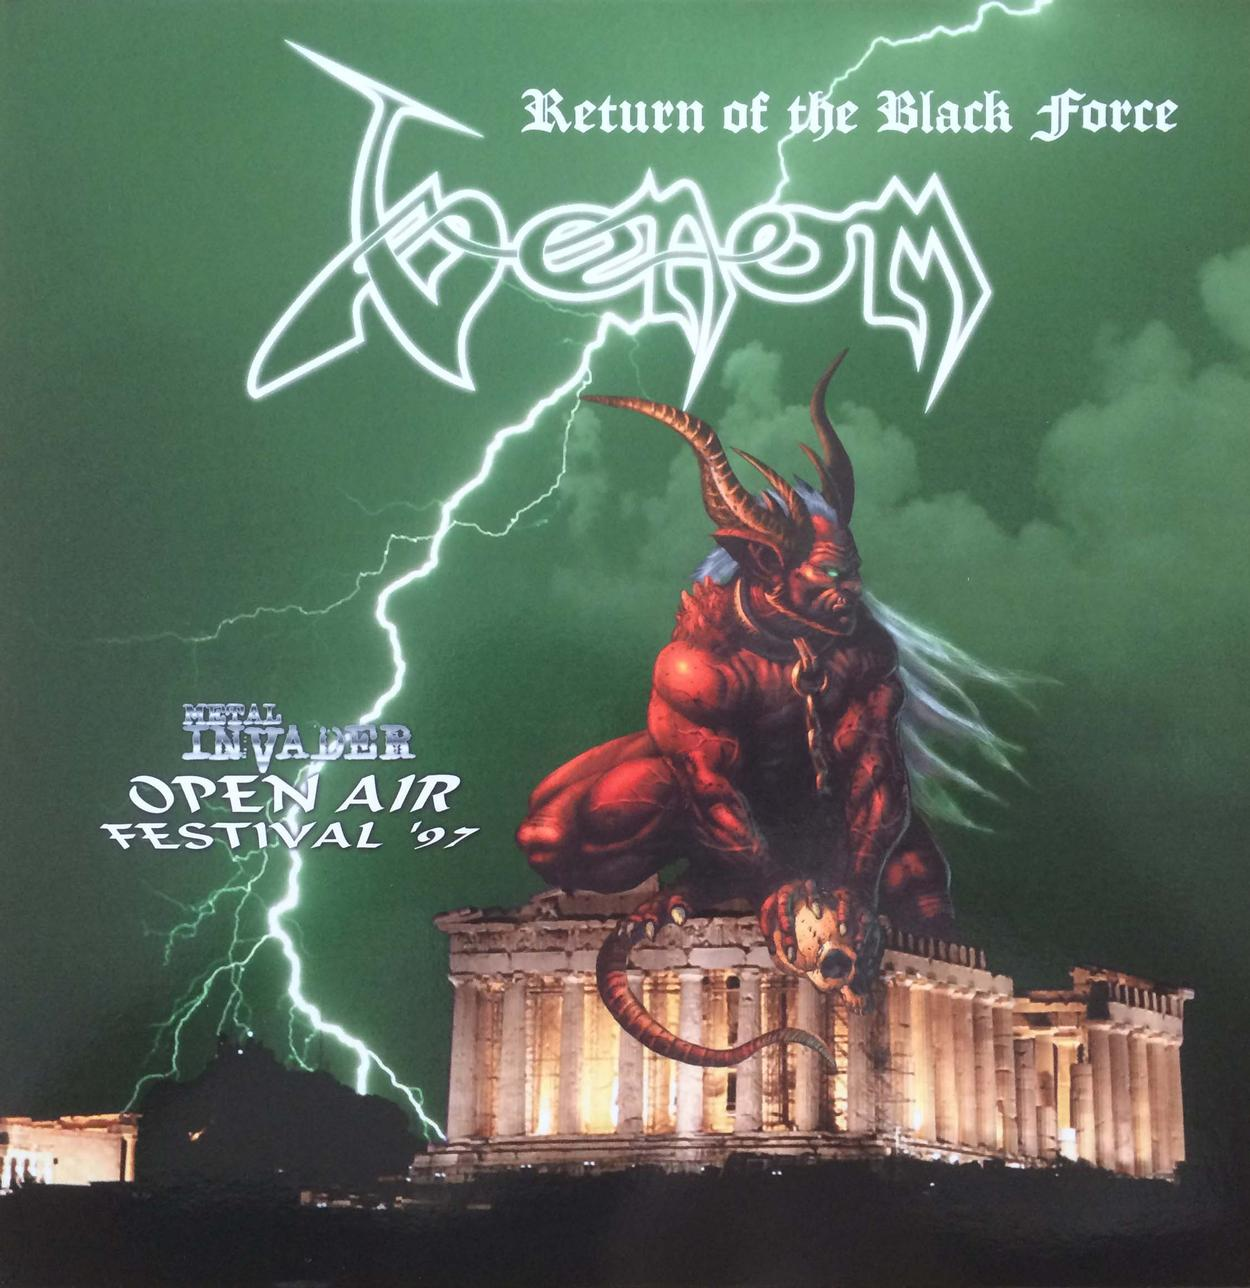 Venom return of the black force athen 1997 live